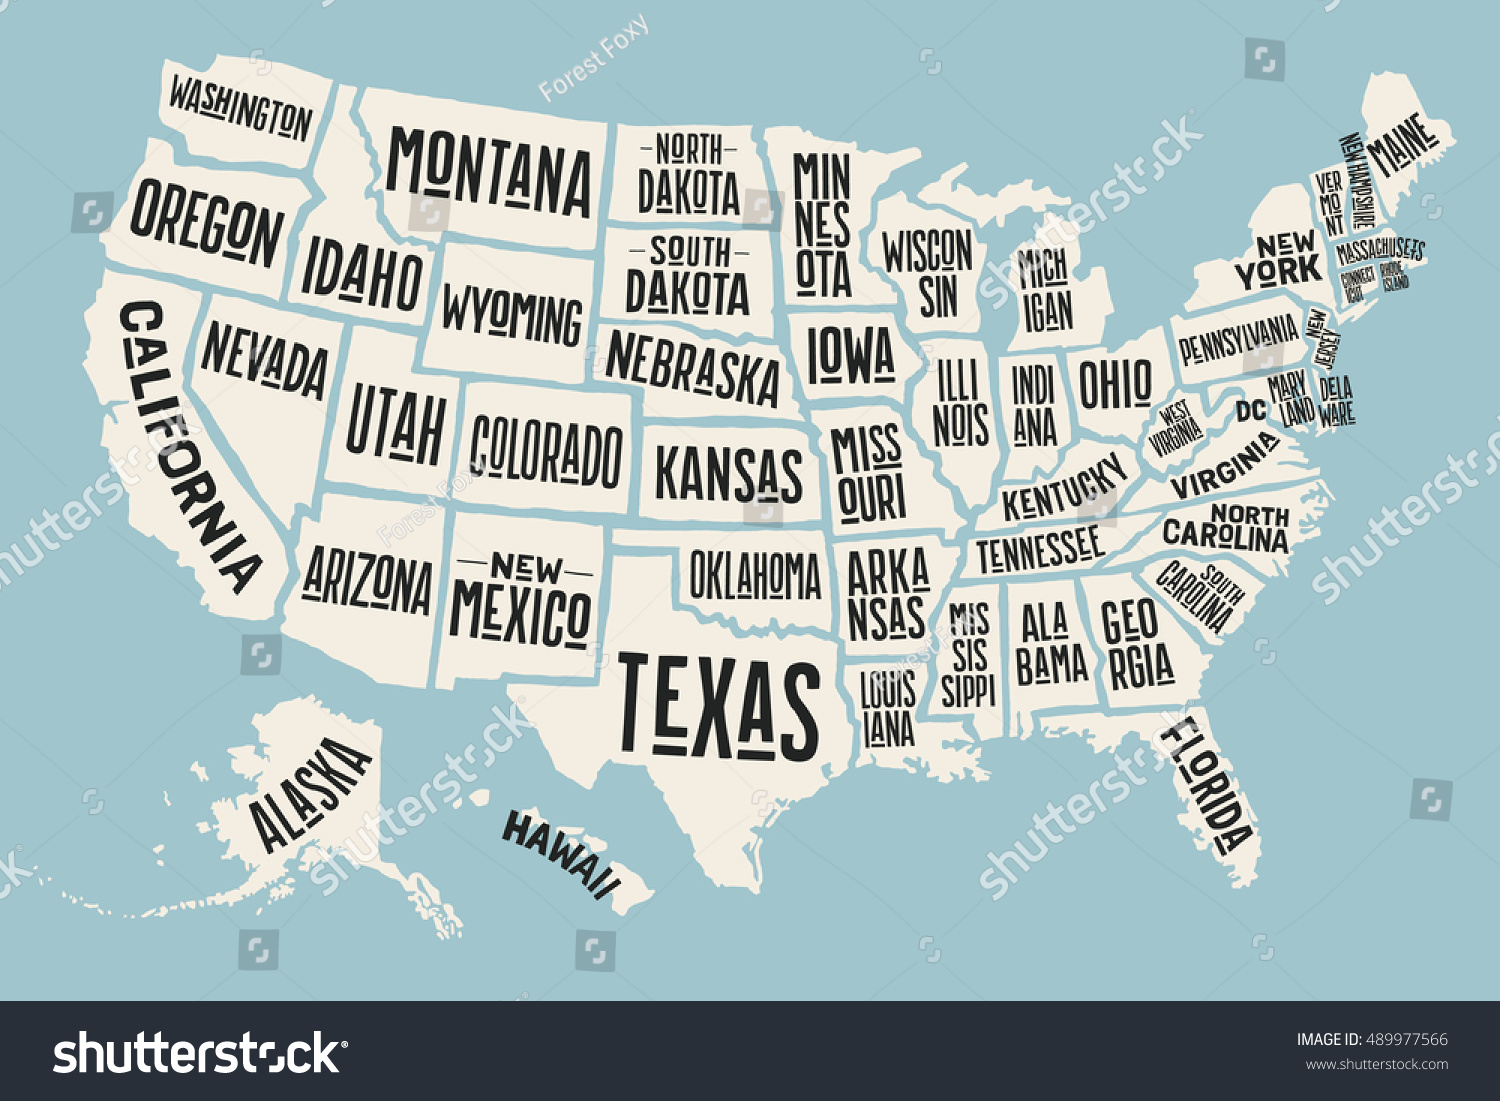 Poster Map United States America State Stock Vector - Poster map of usa